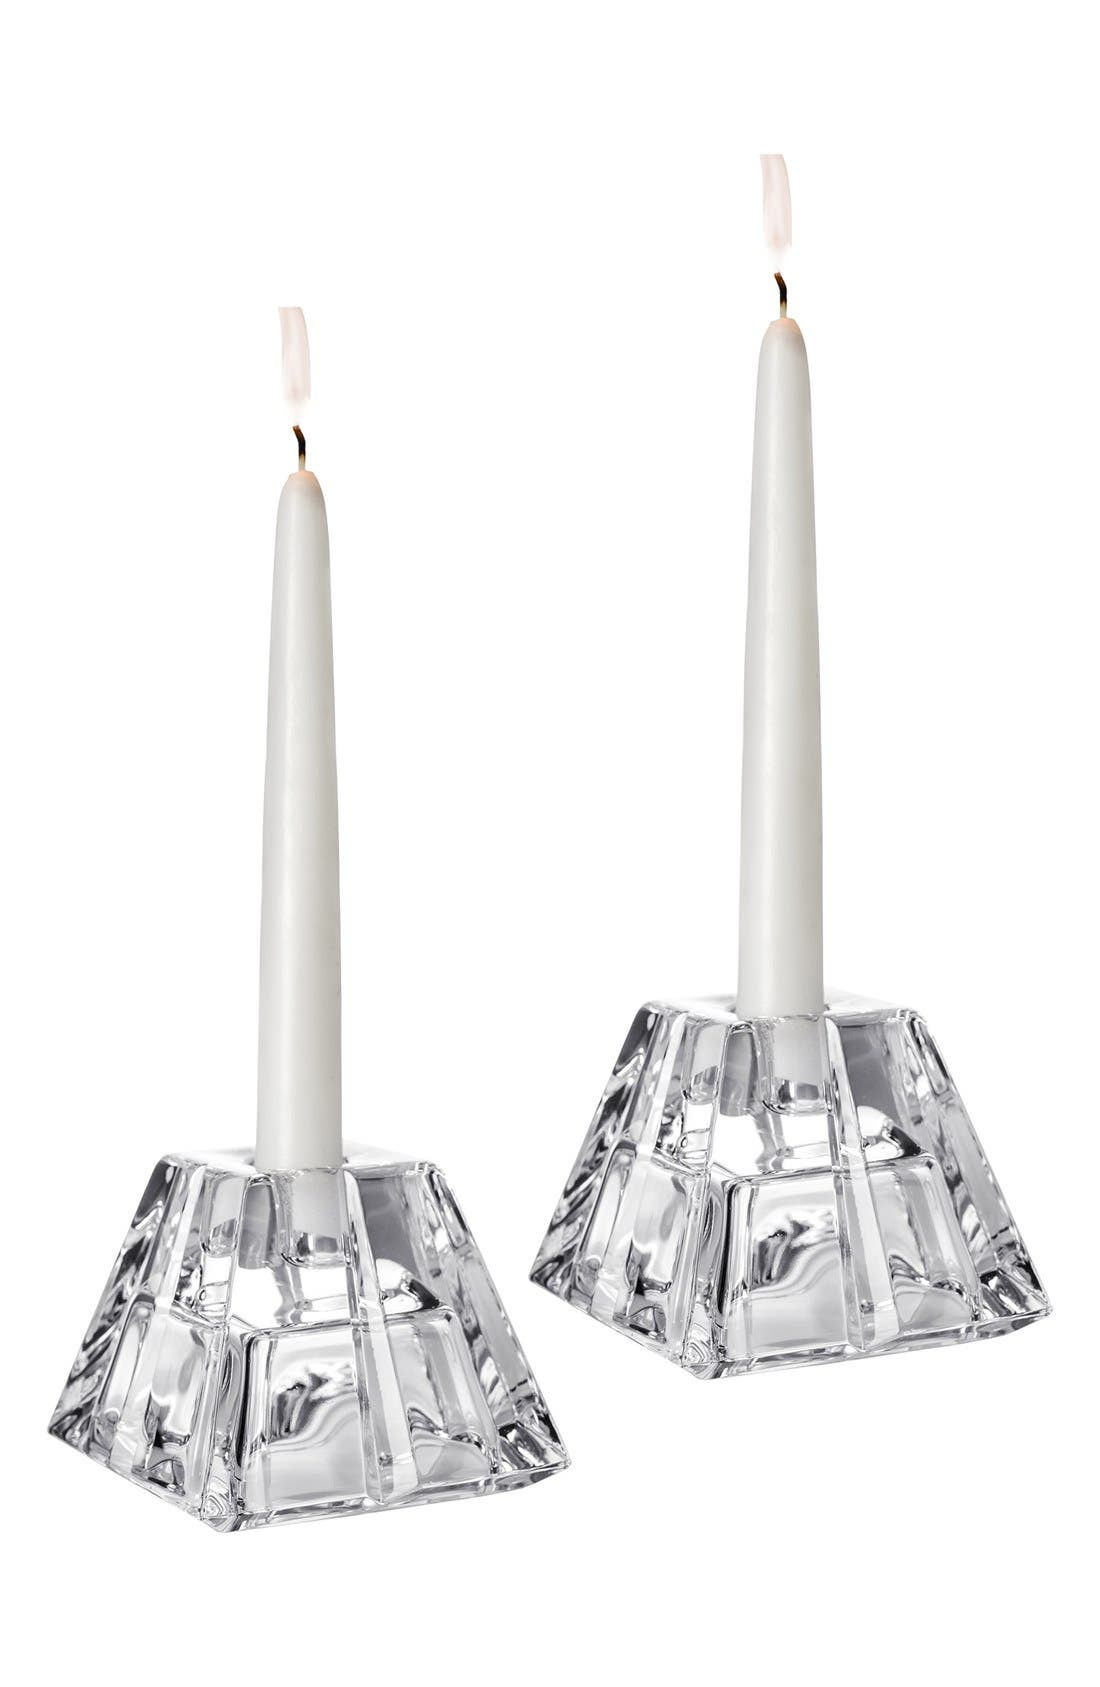 Alternate Image 1 Selected - Orrefors 'Plaza' Crystal Candlesticks (Set of 2)